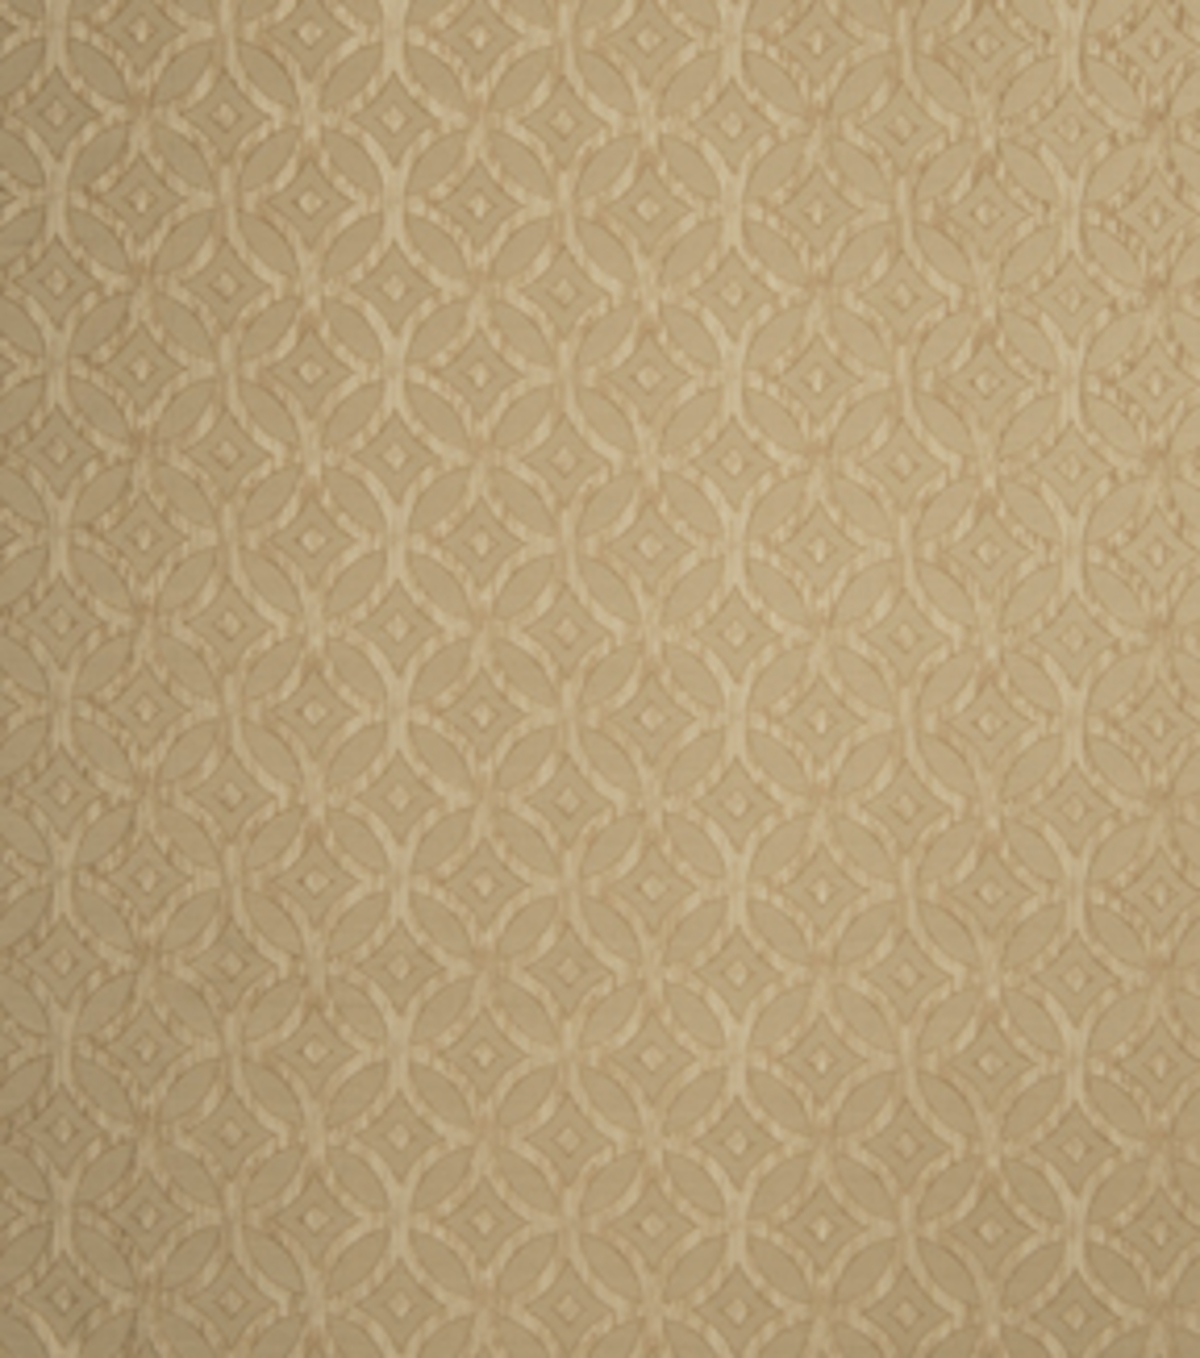 Home Decor 8\u0022x8\u0022 Fabric Swatch-Eaton Square Sightseeing Natural